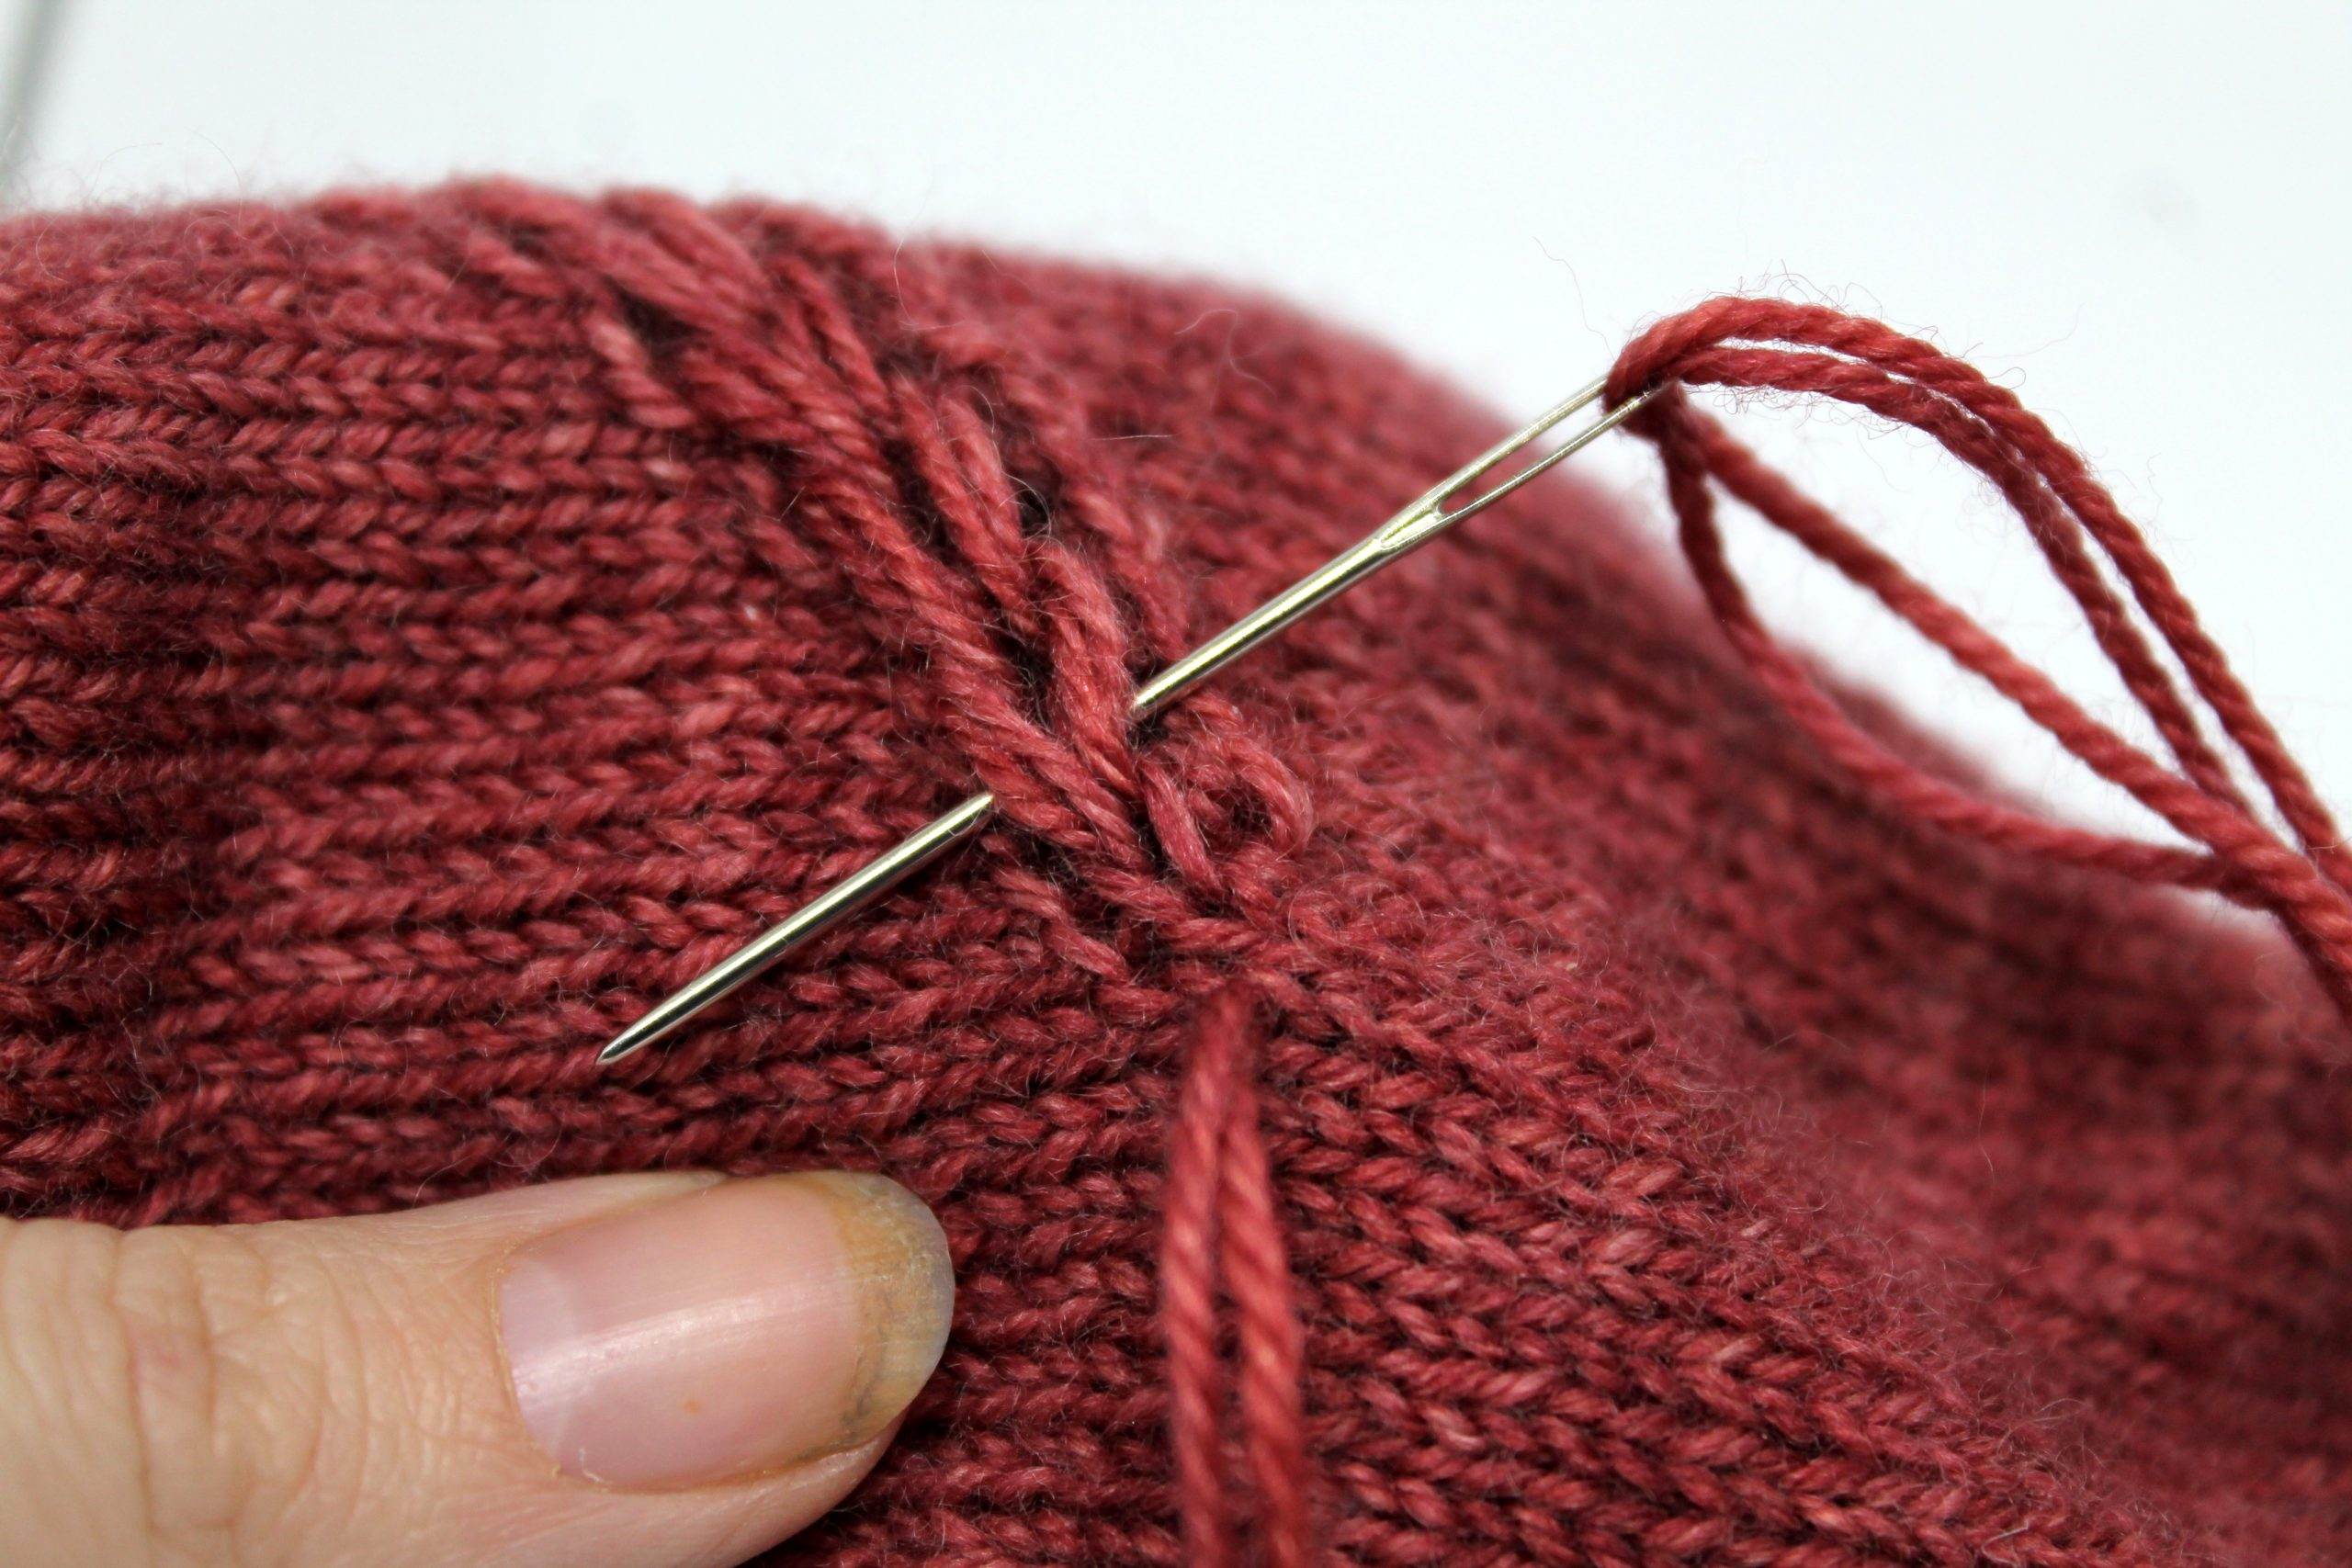 The tapestry needle passing behind the first stitch of the drop stitch braid